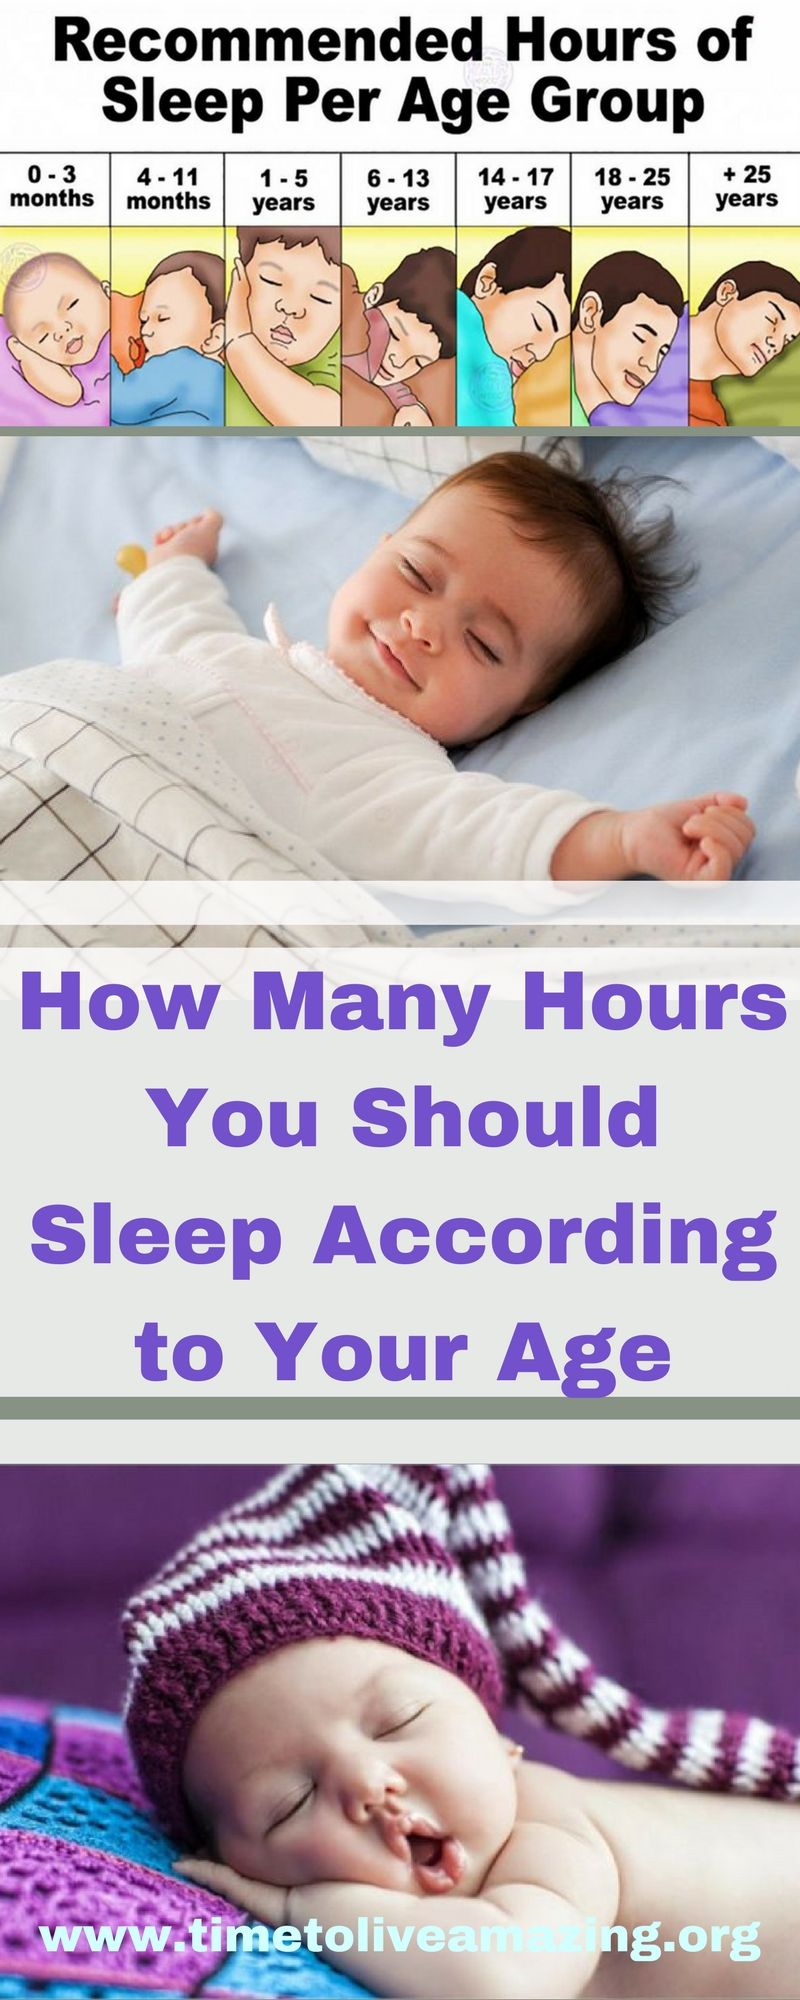 How Many Hours You Should Sleep According to Your Age ...